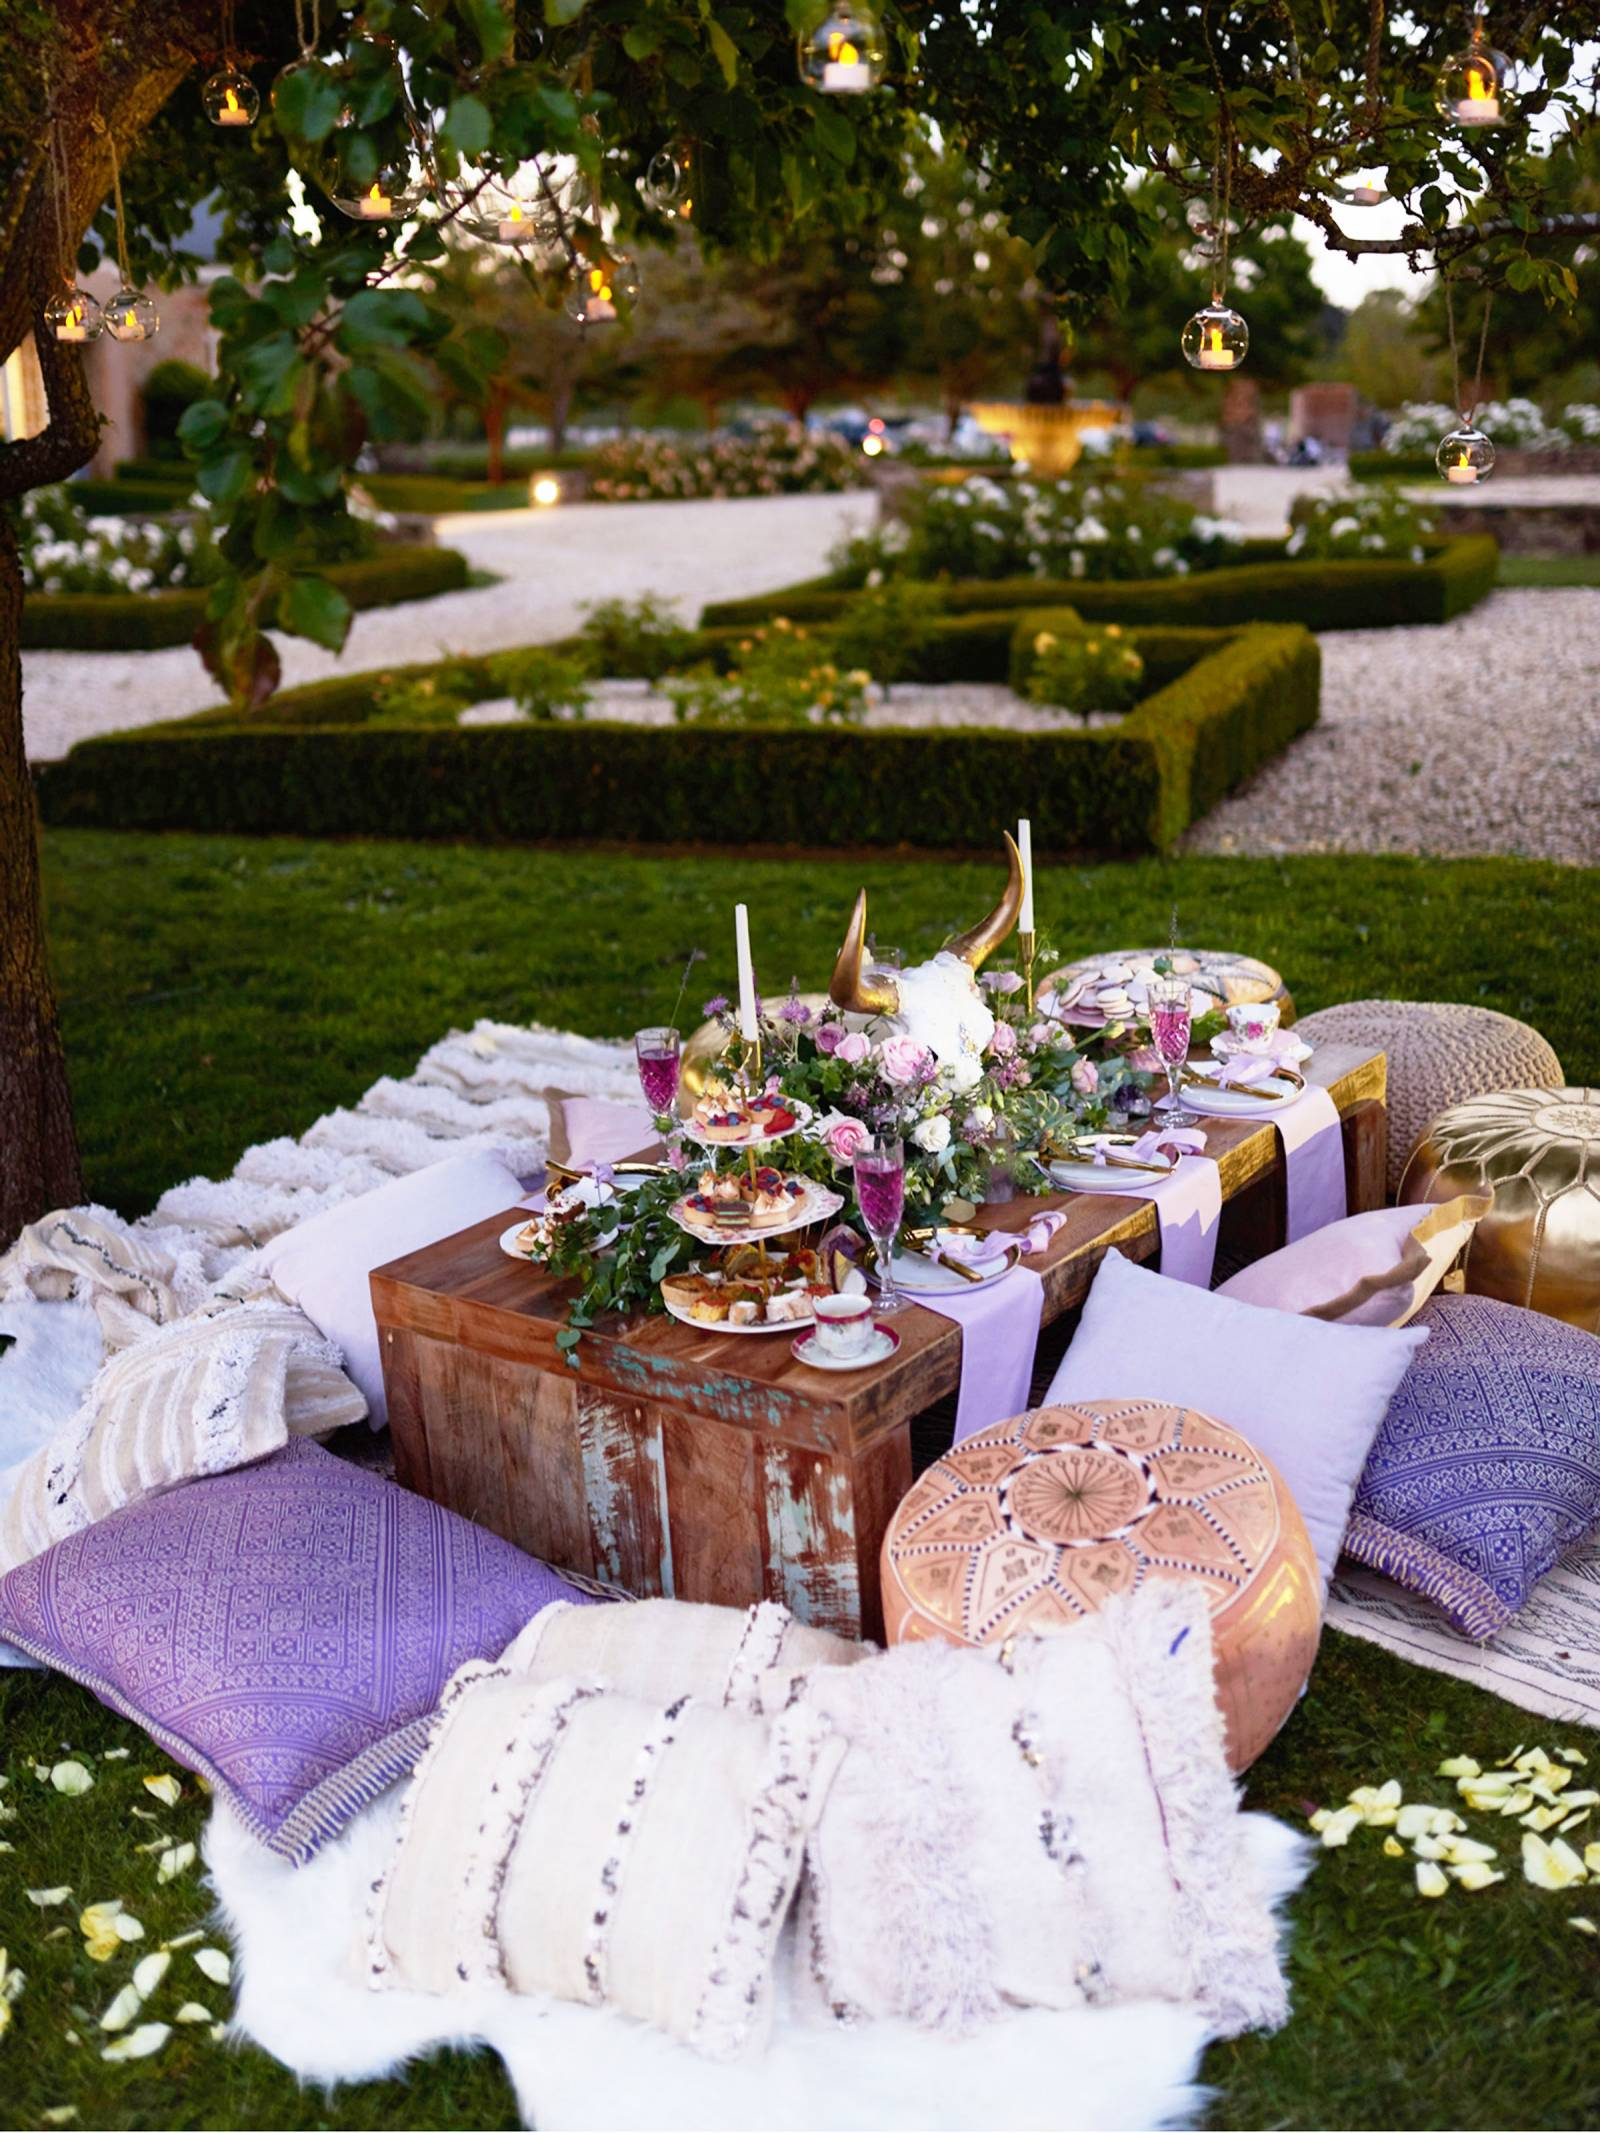 Rustic wood table with pink and lavender florals, dessert tower, china and pillows